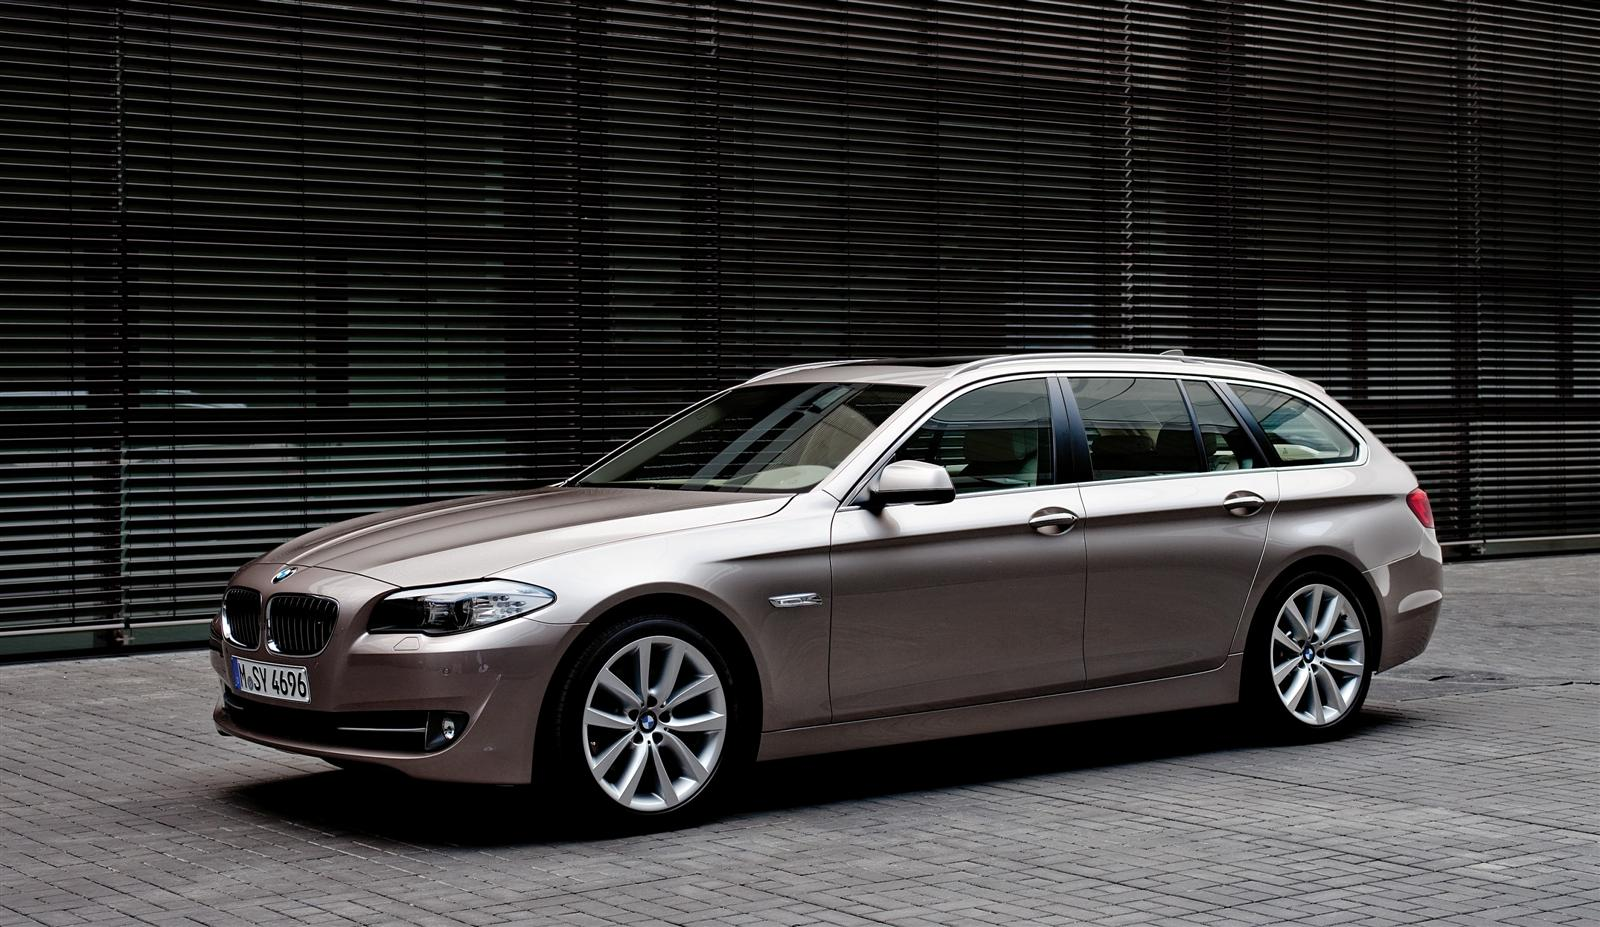 Bmw Heaven Specification Database Specifications For Bmw 520d F11 A Touring 2010 Now